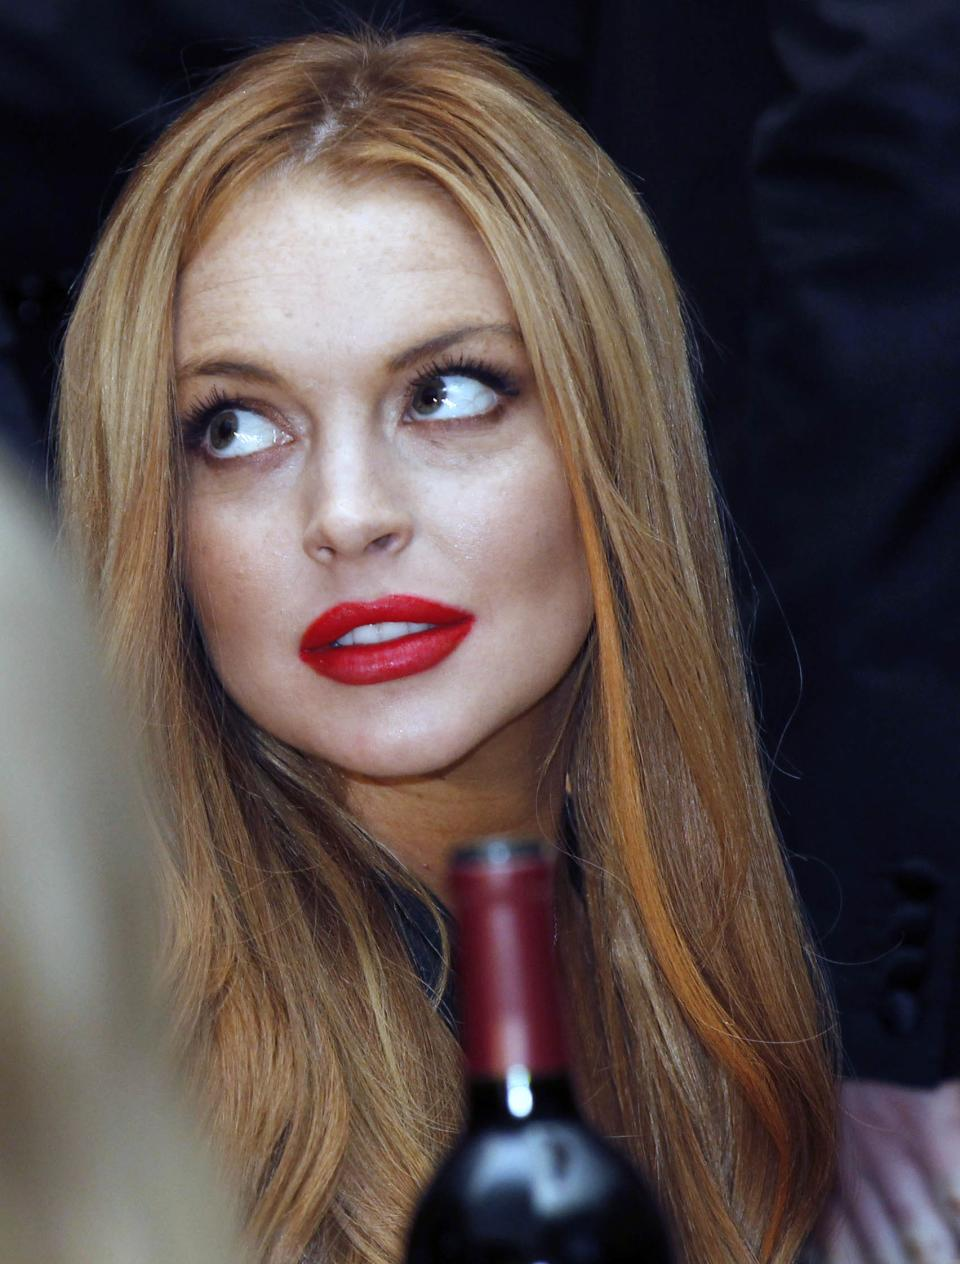 Lindsay Lohan attends the White House Correspondents' Association Dinner headlined by late-night comic Jimmy Kimmel, Saturday, April 28, 2012 in Washington. (AP Photo/Haraz N. Ghanbari)